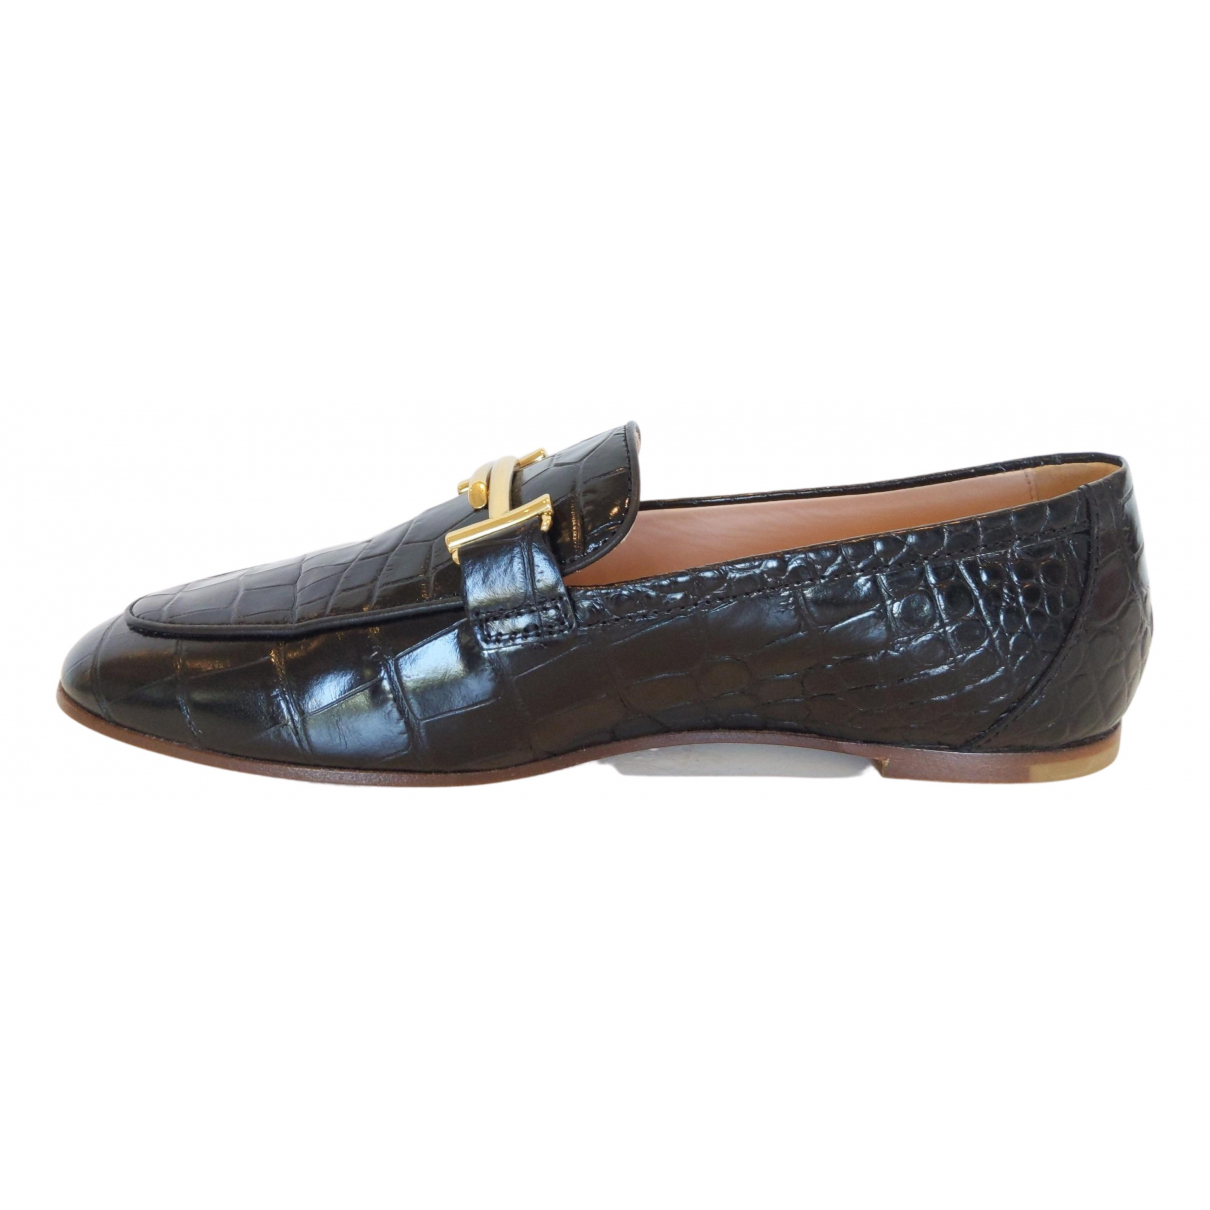 Tod's \N Black Patent leather Flats for Women 38.5 EU